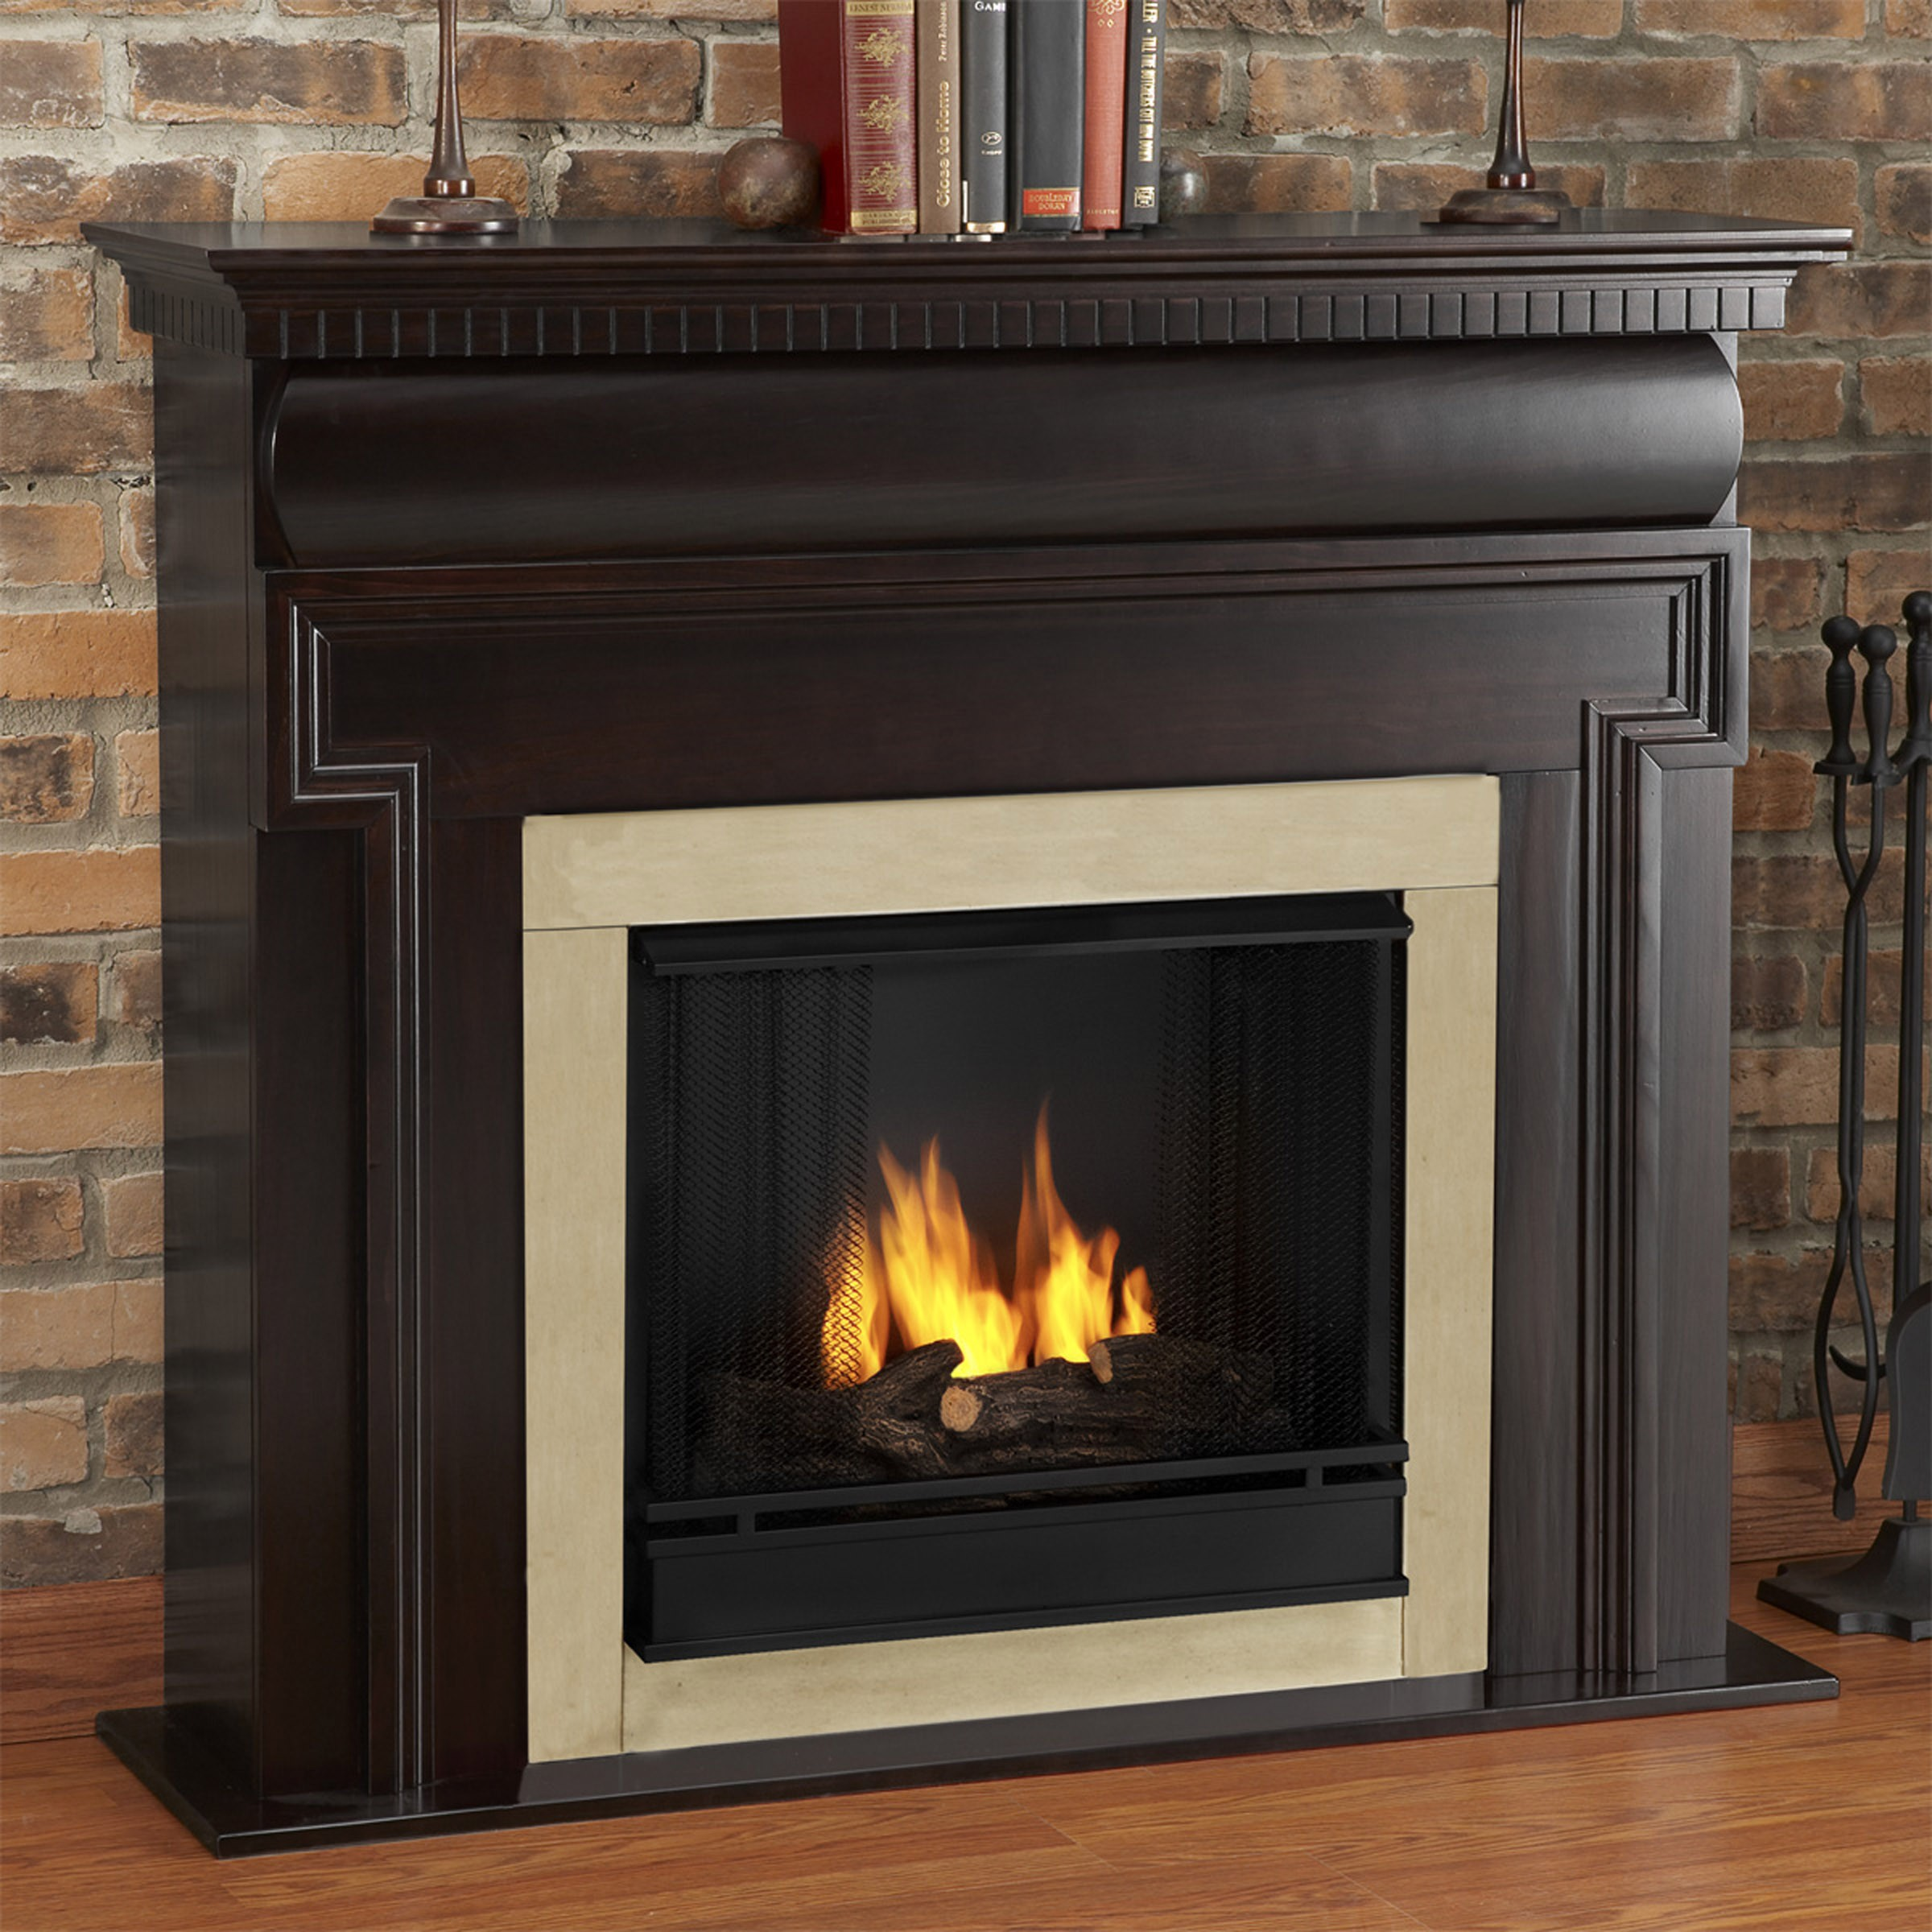 Heat and Glo Slimline Series Gas Fireplace